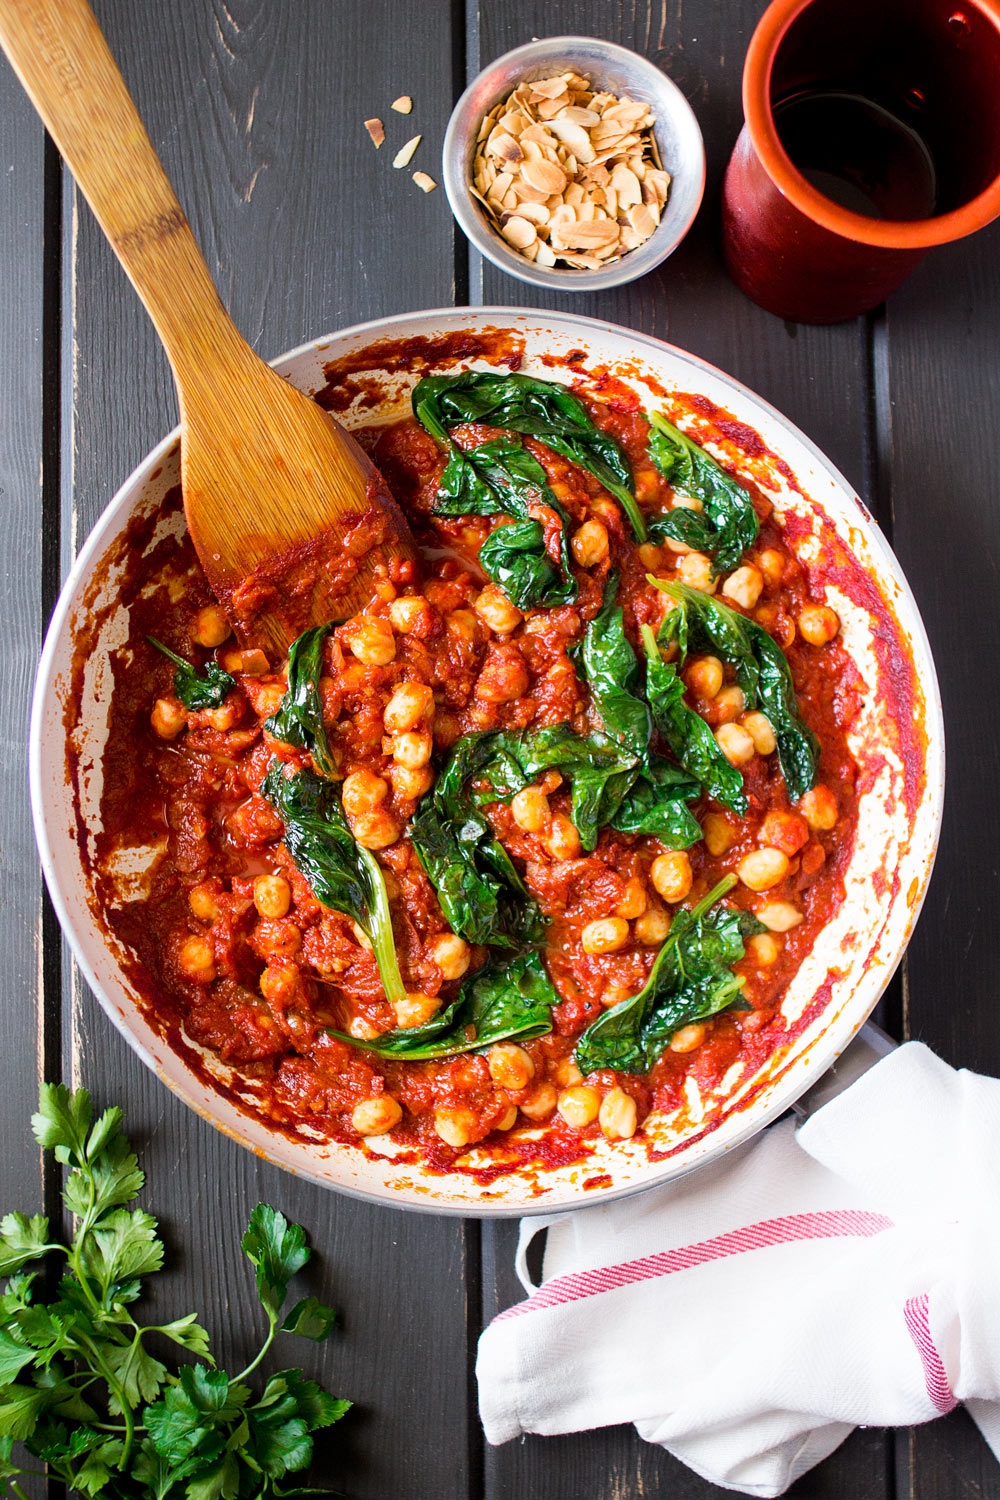 Spanish Chickpea And Spinach Stew Lazy Cat Kitchen